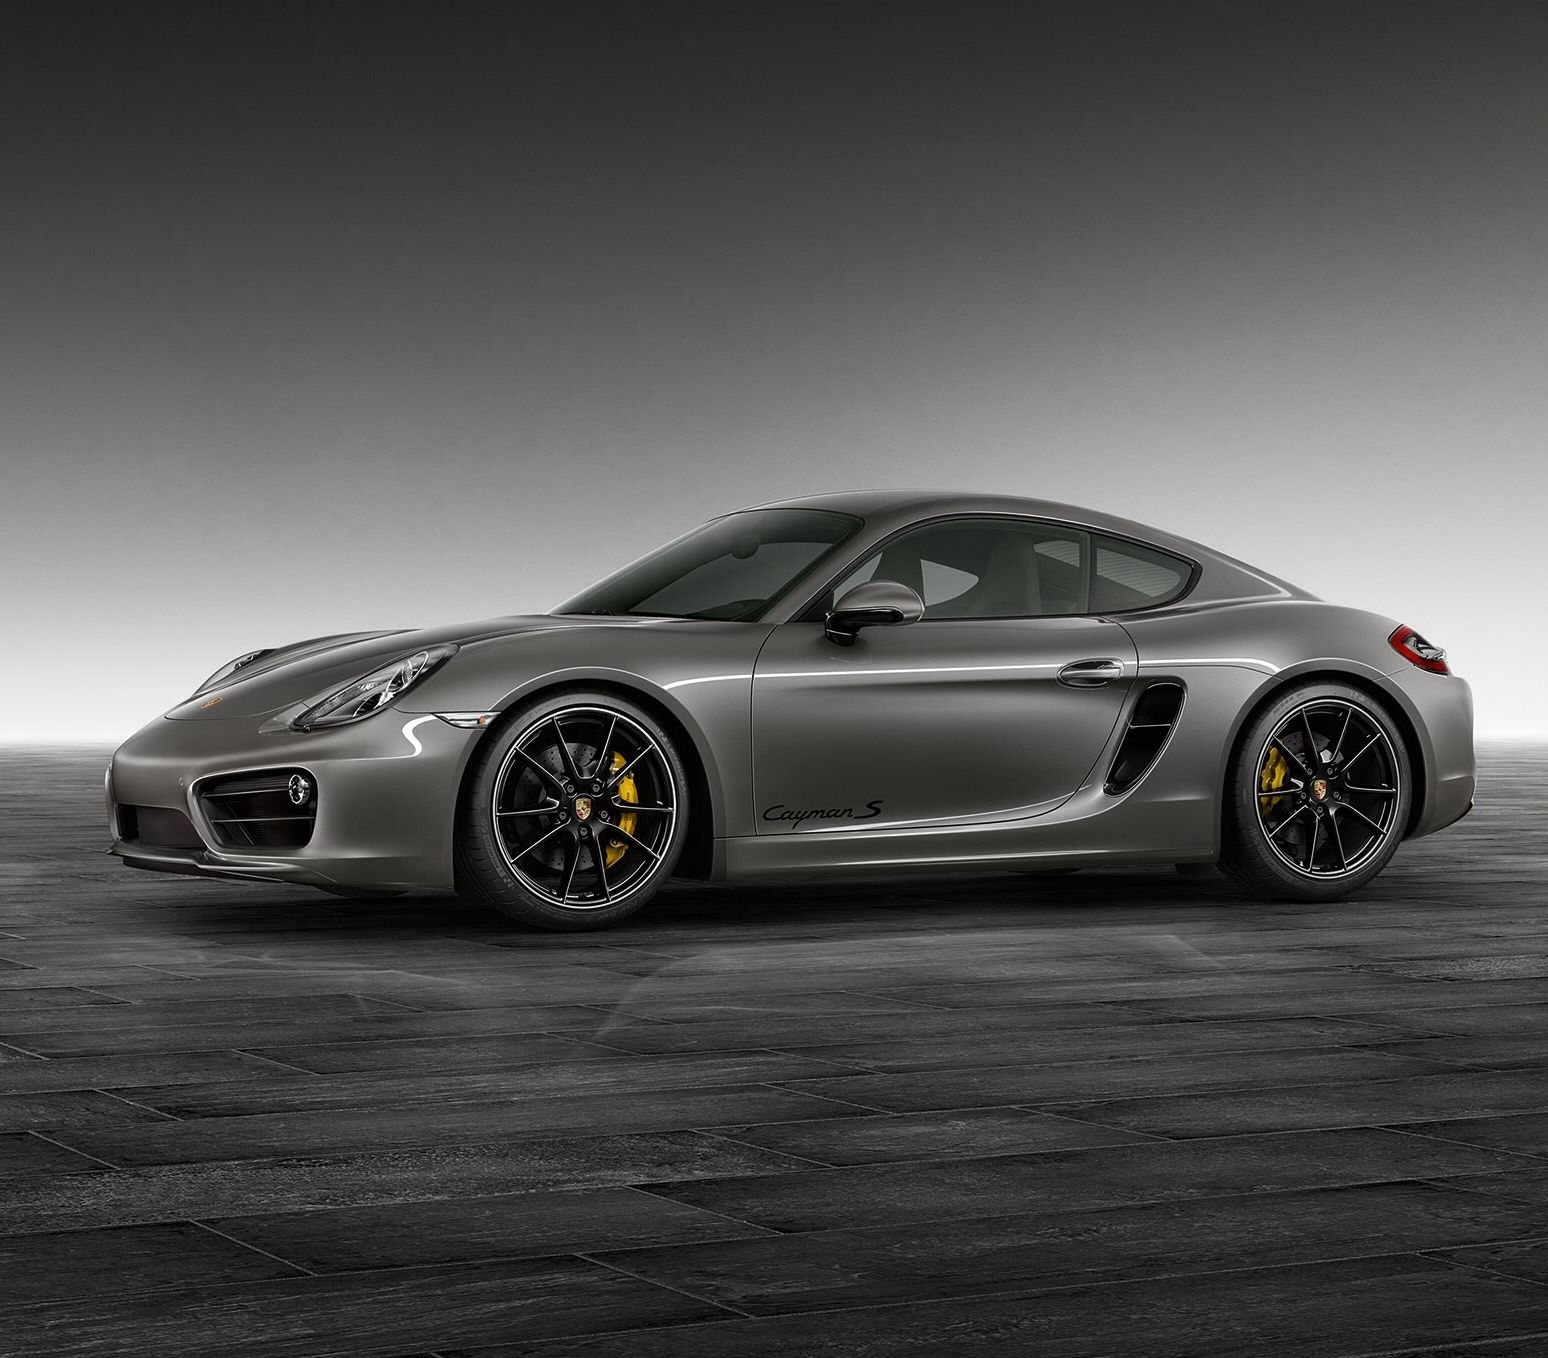 porsche exclusive cayman s agate grey metallic cars that go boom rh pinterest com